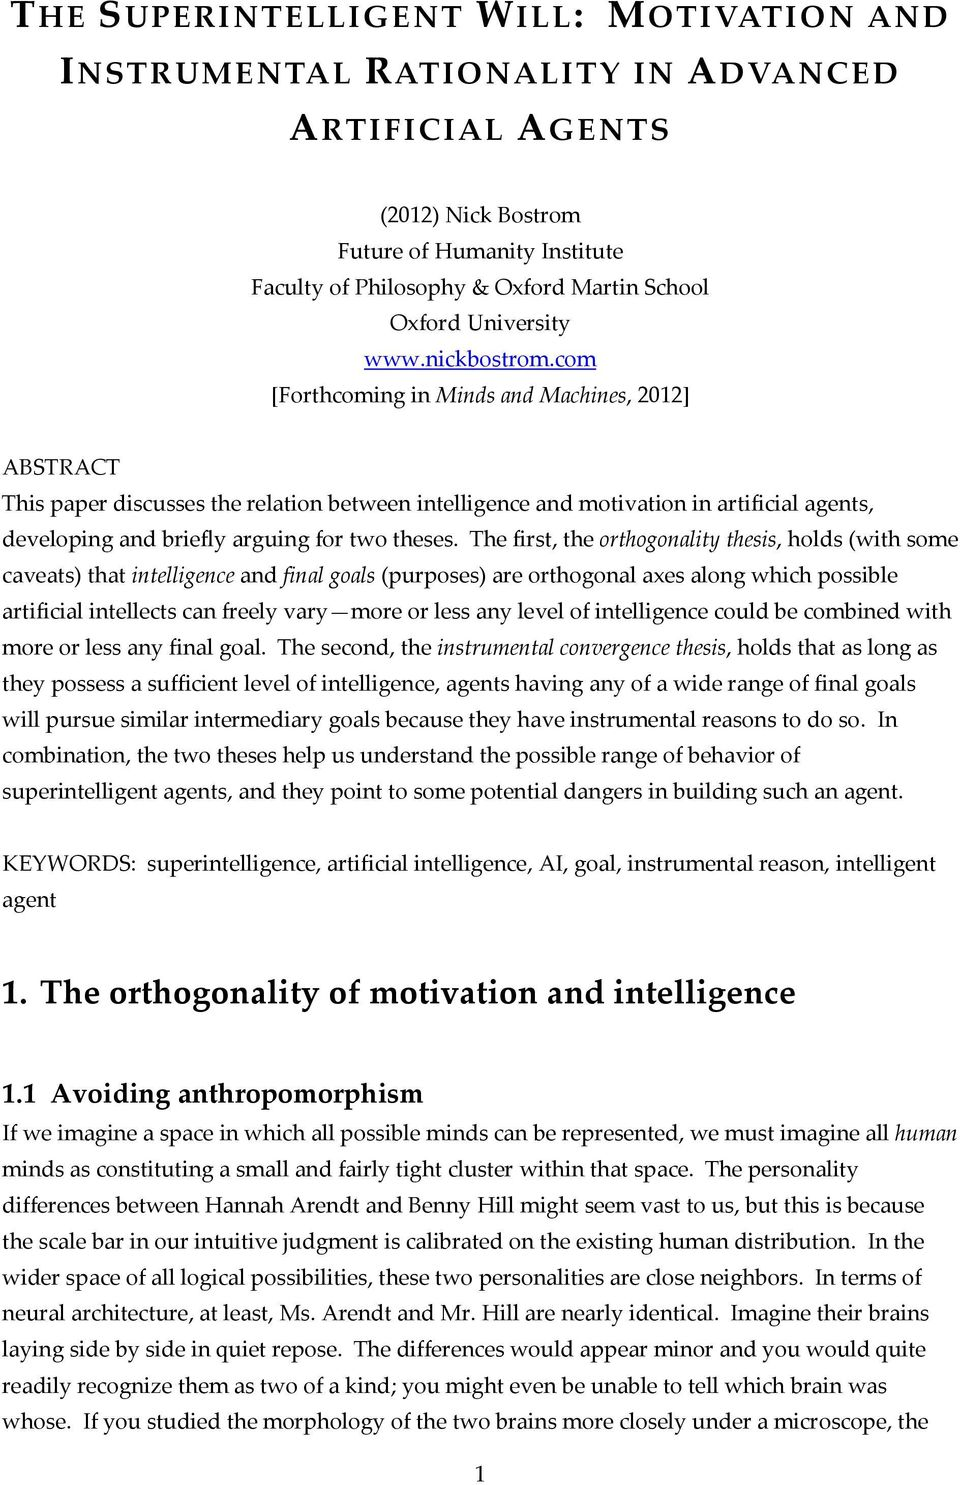 com [Forthcoming in Minds and Machines, 2012] ABSTRACT This paper discusses the relation between intelligence and motivation in artificial agents, developing and briefly arguing for two theses.